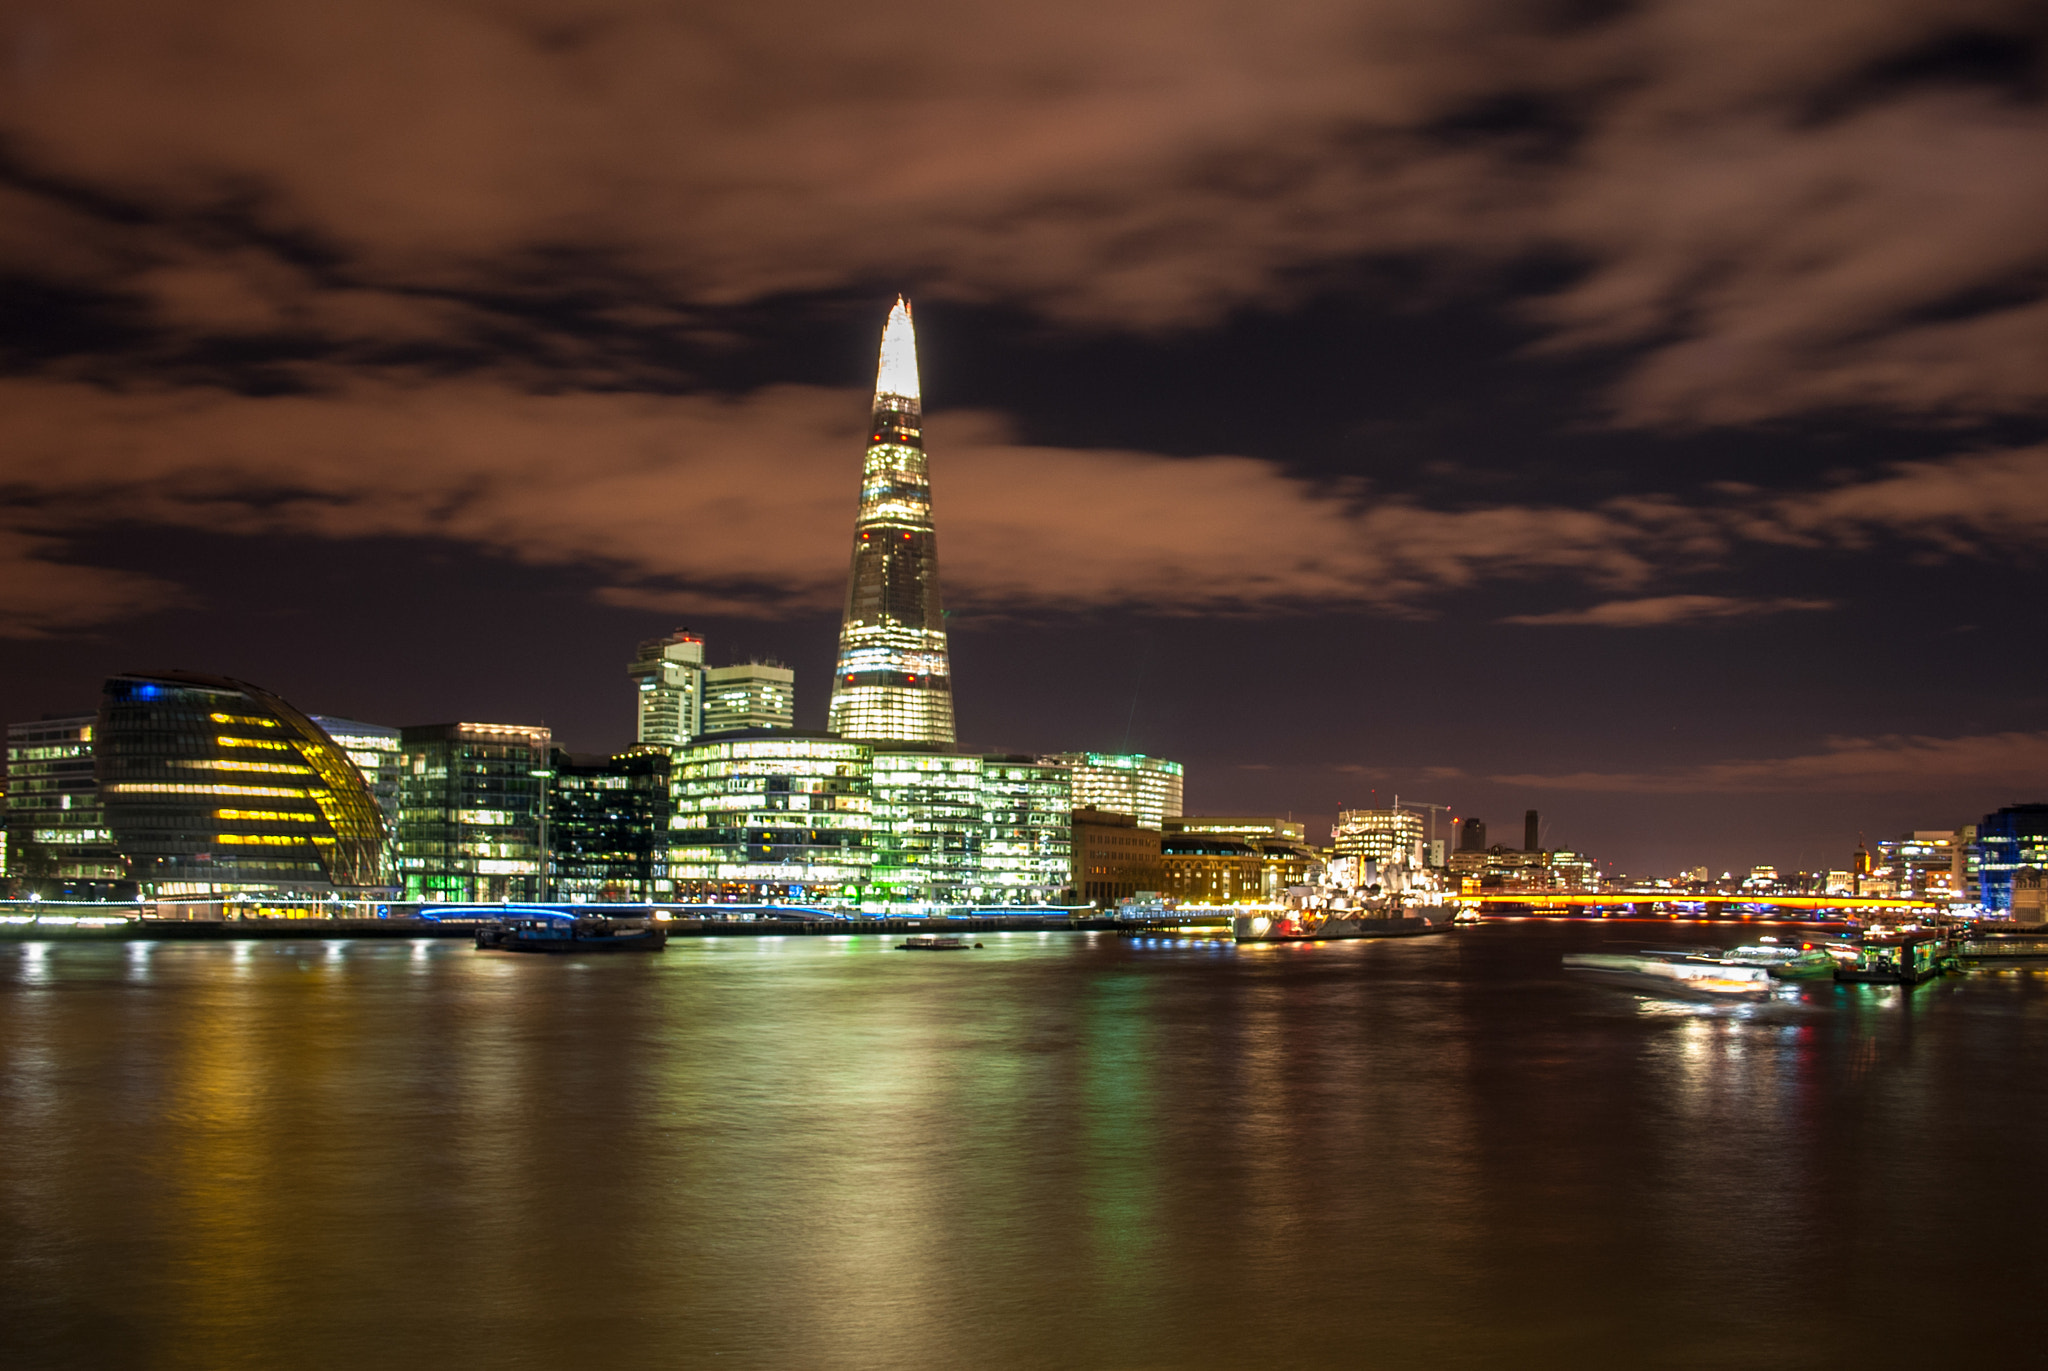 Photograph The Shard by Pablo LaVegui on 500px